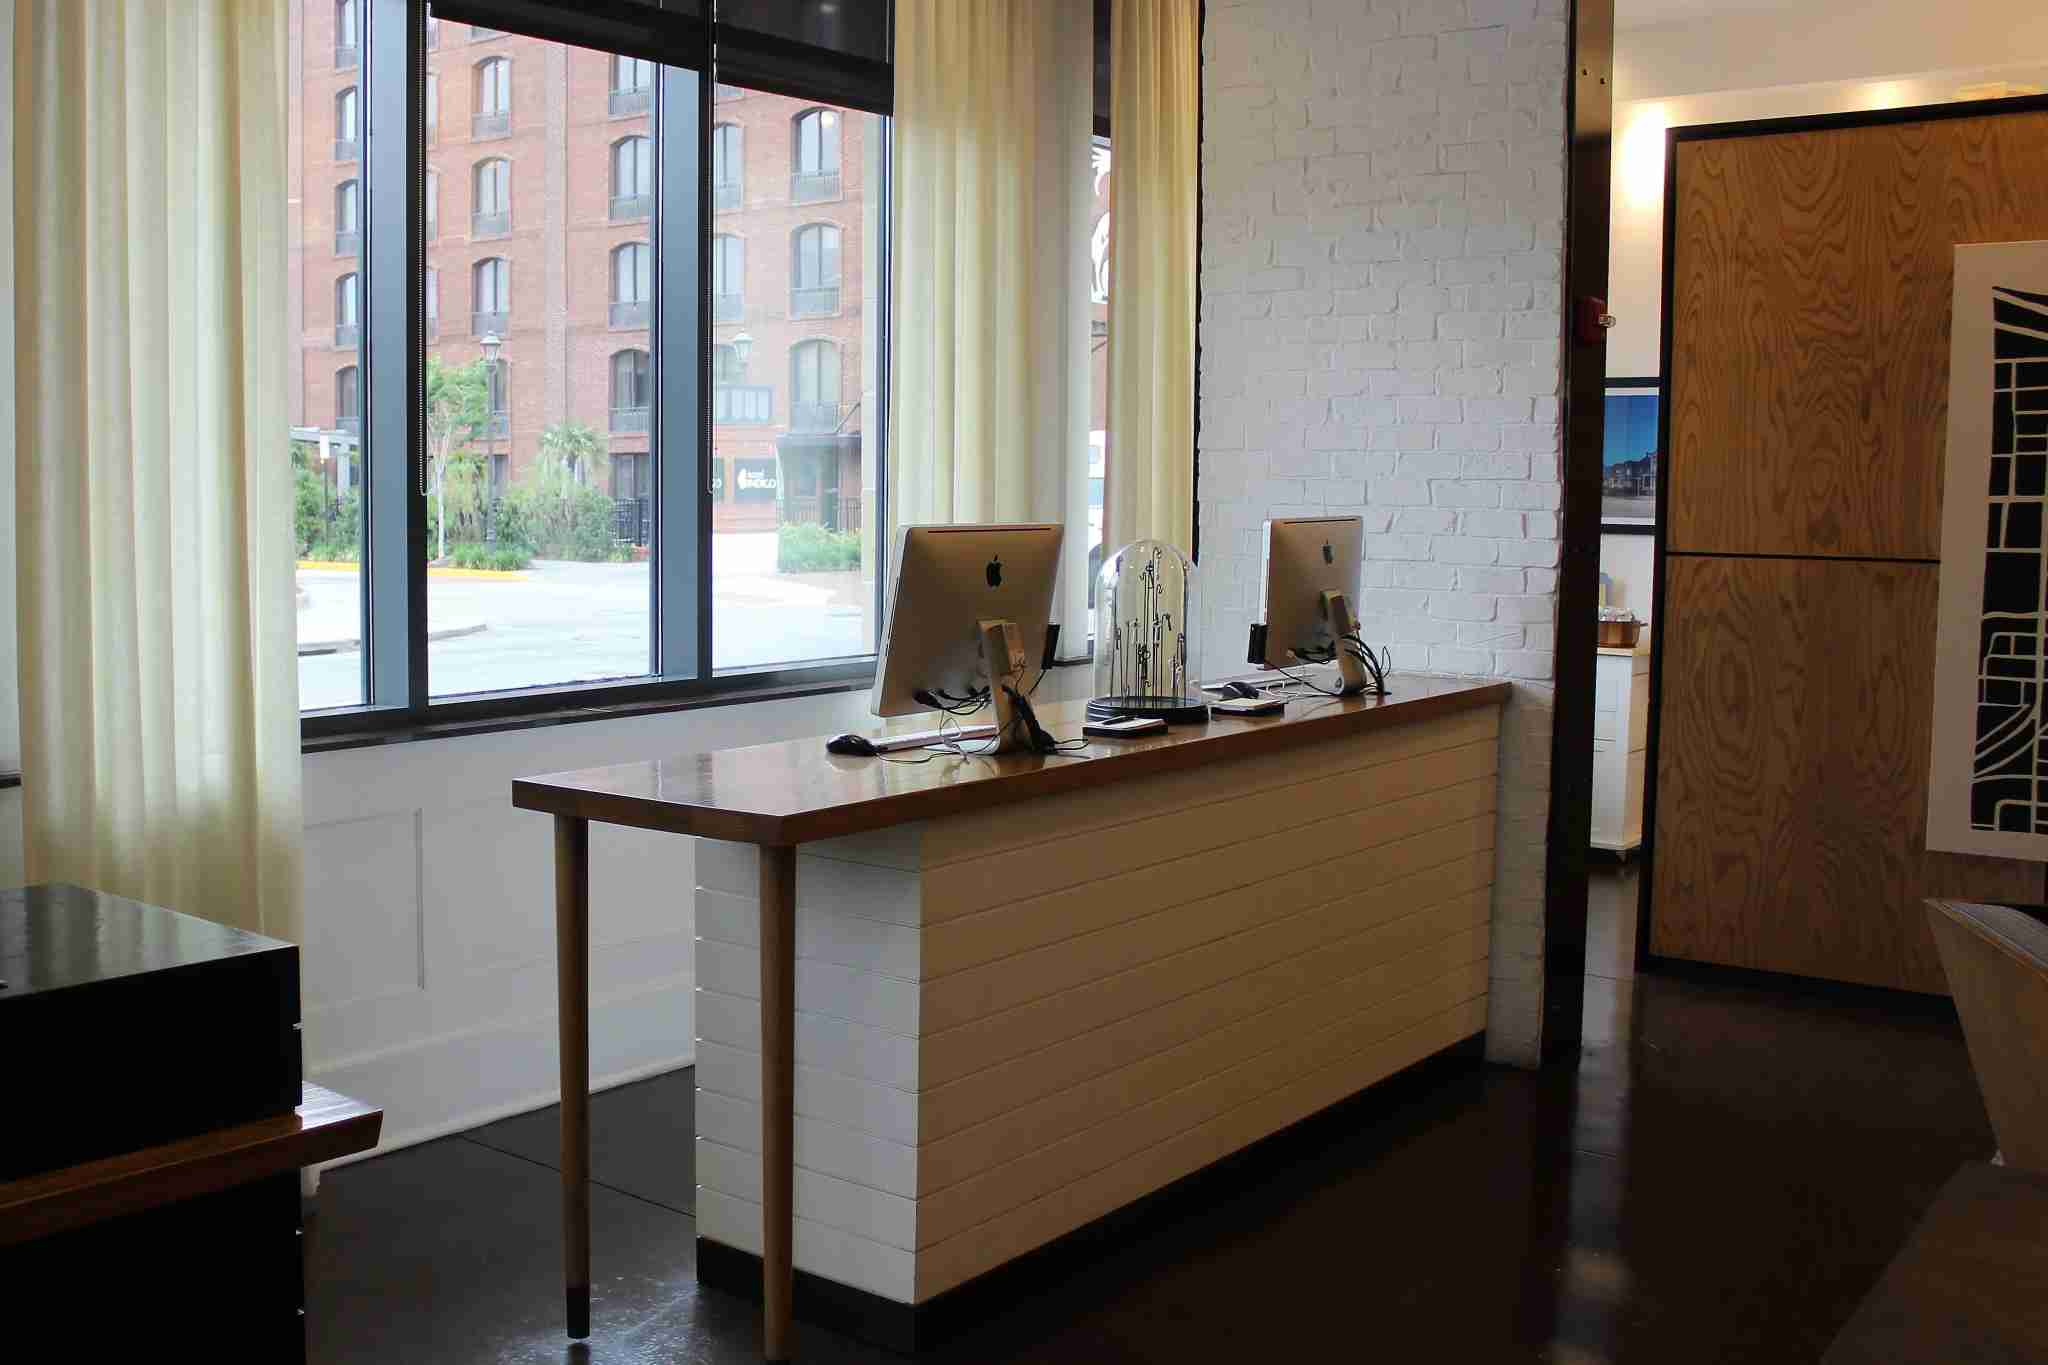 The Andaz had a small work station with two Mac desktop computers.